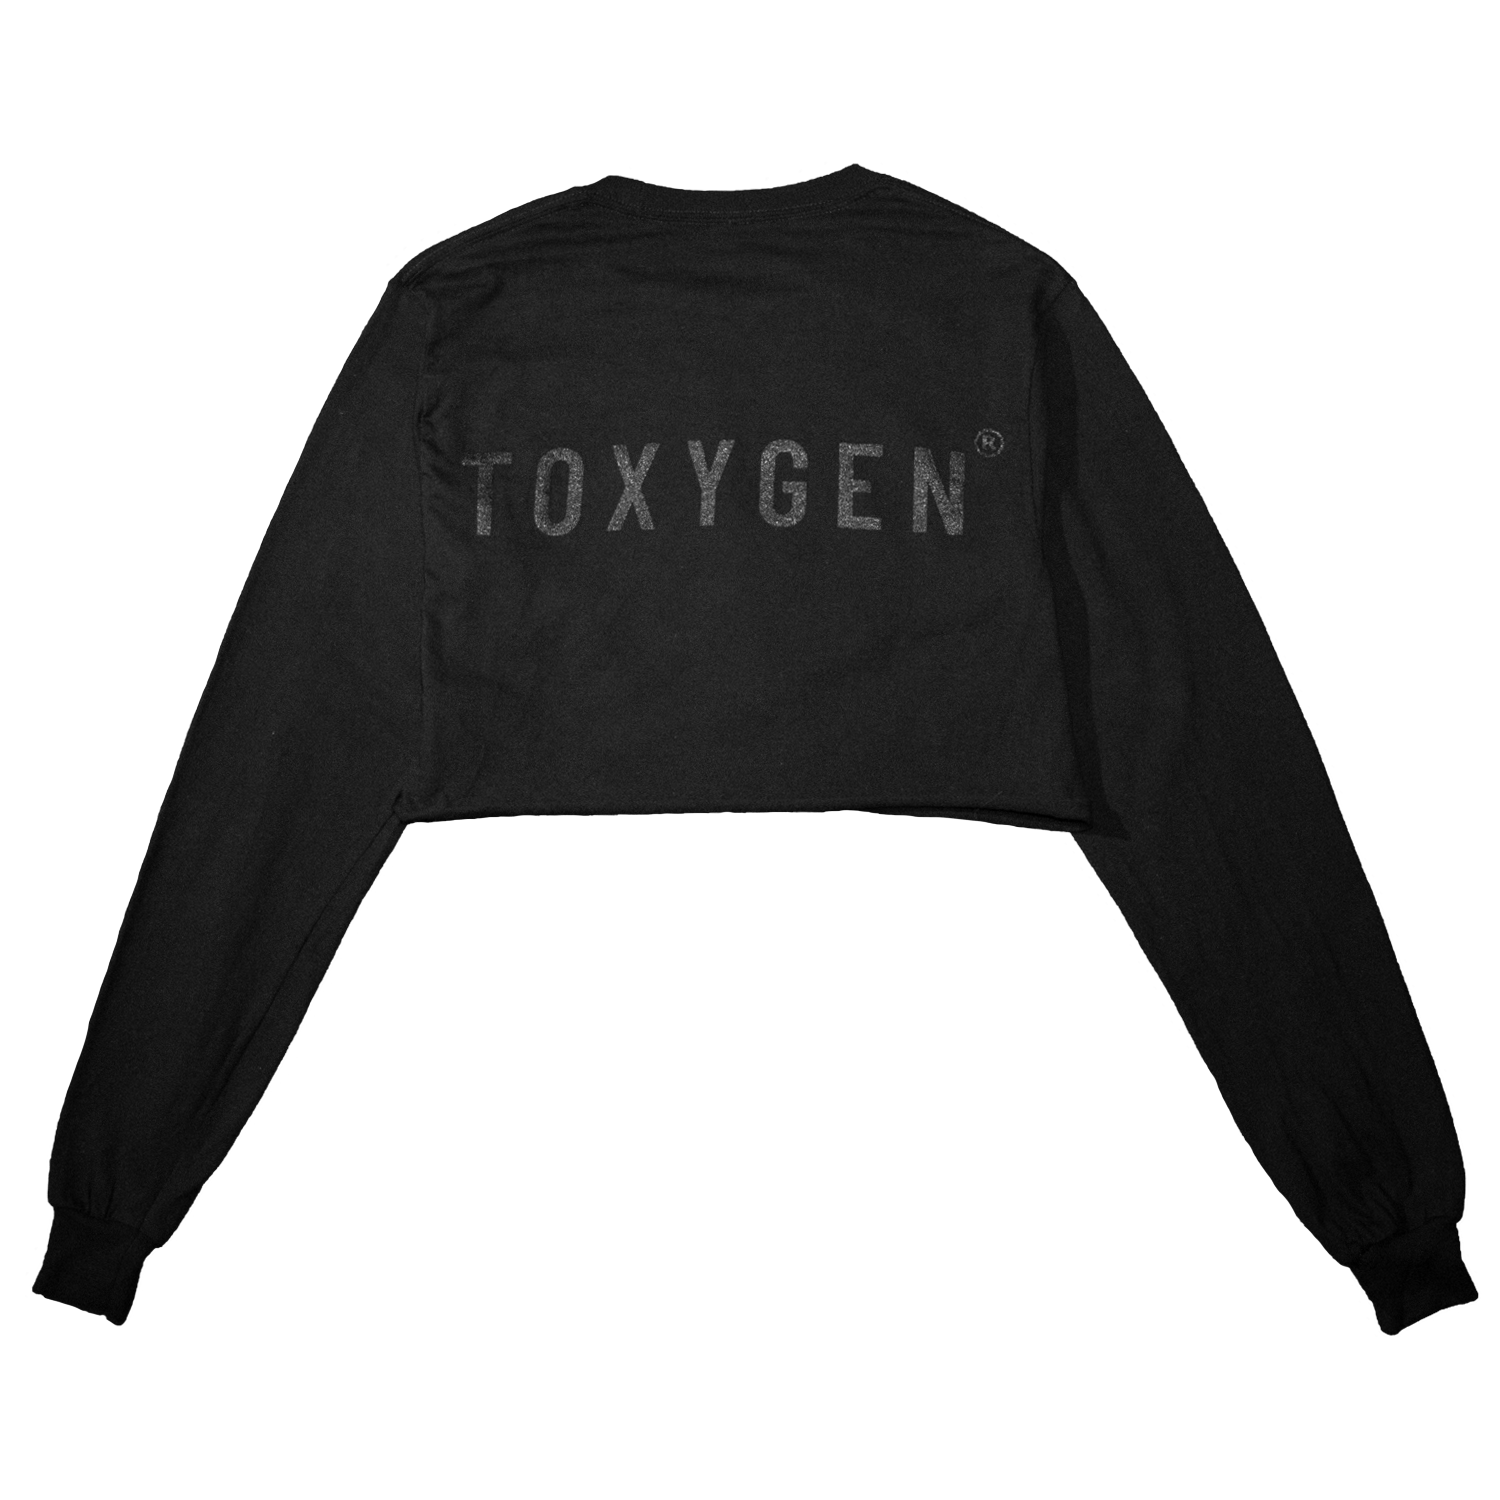 Black Toxygen Crop Top